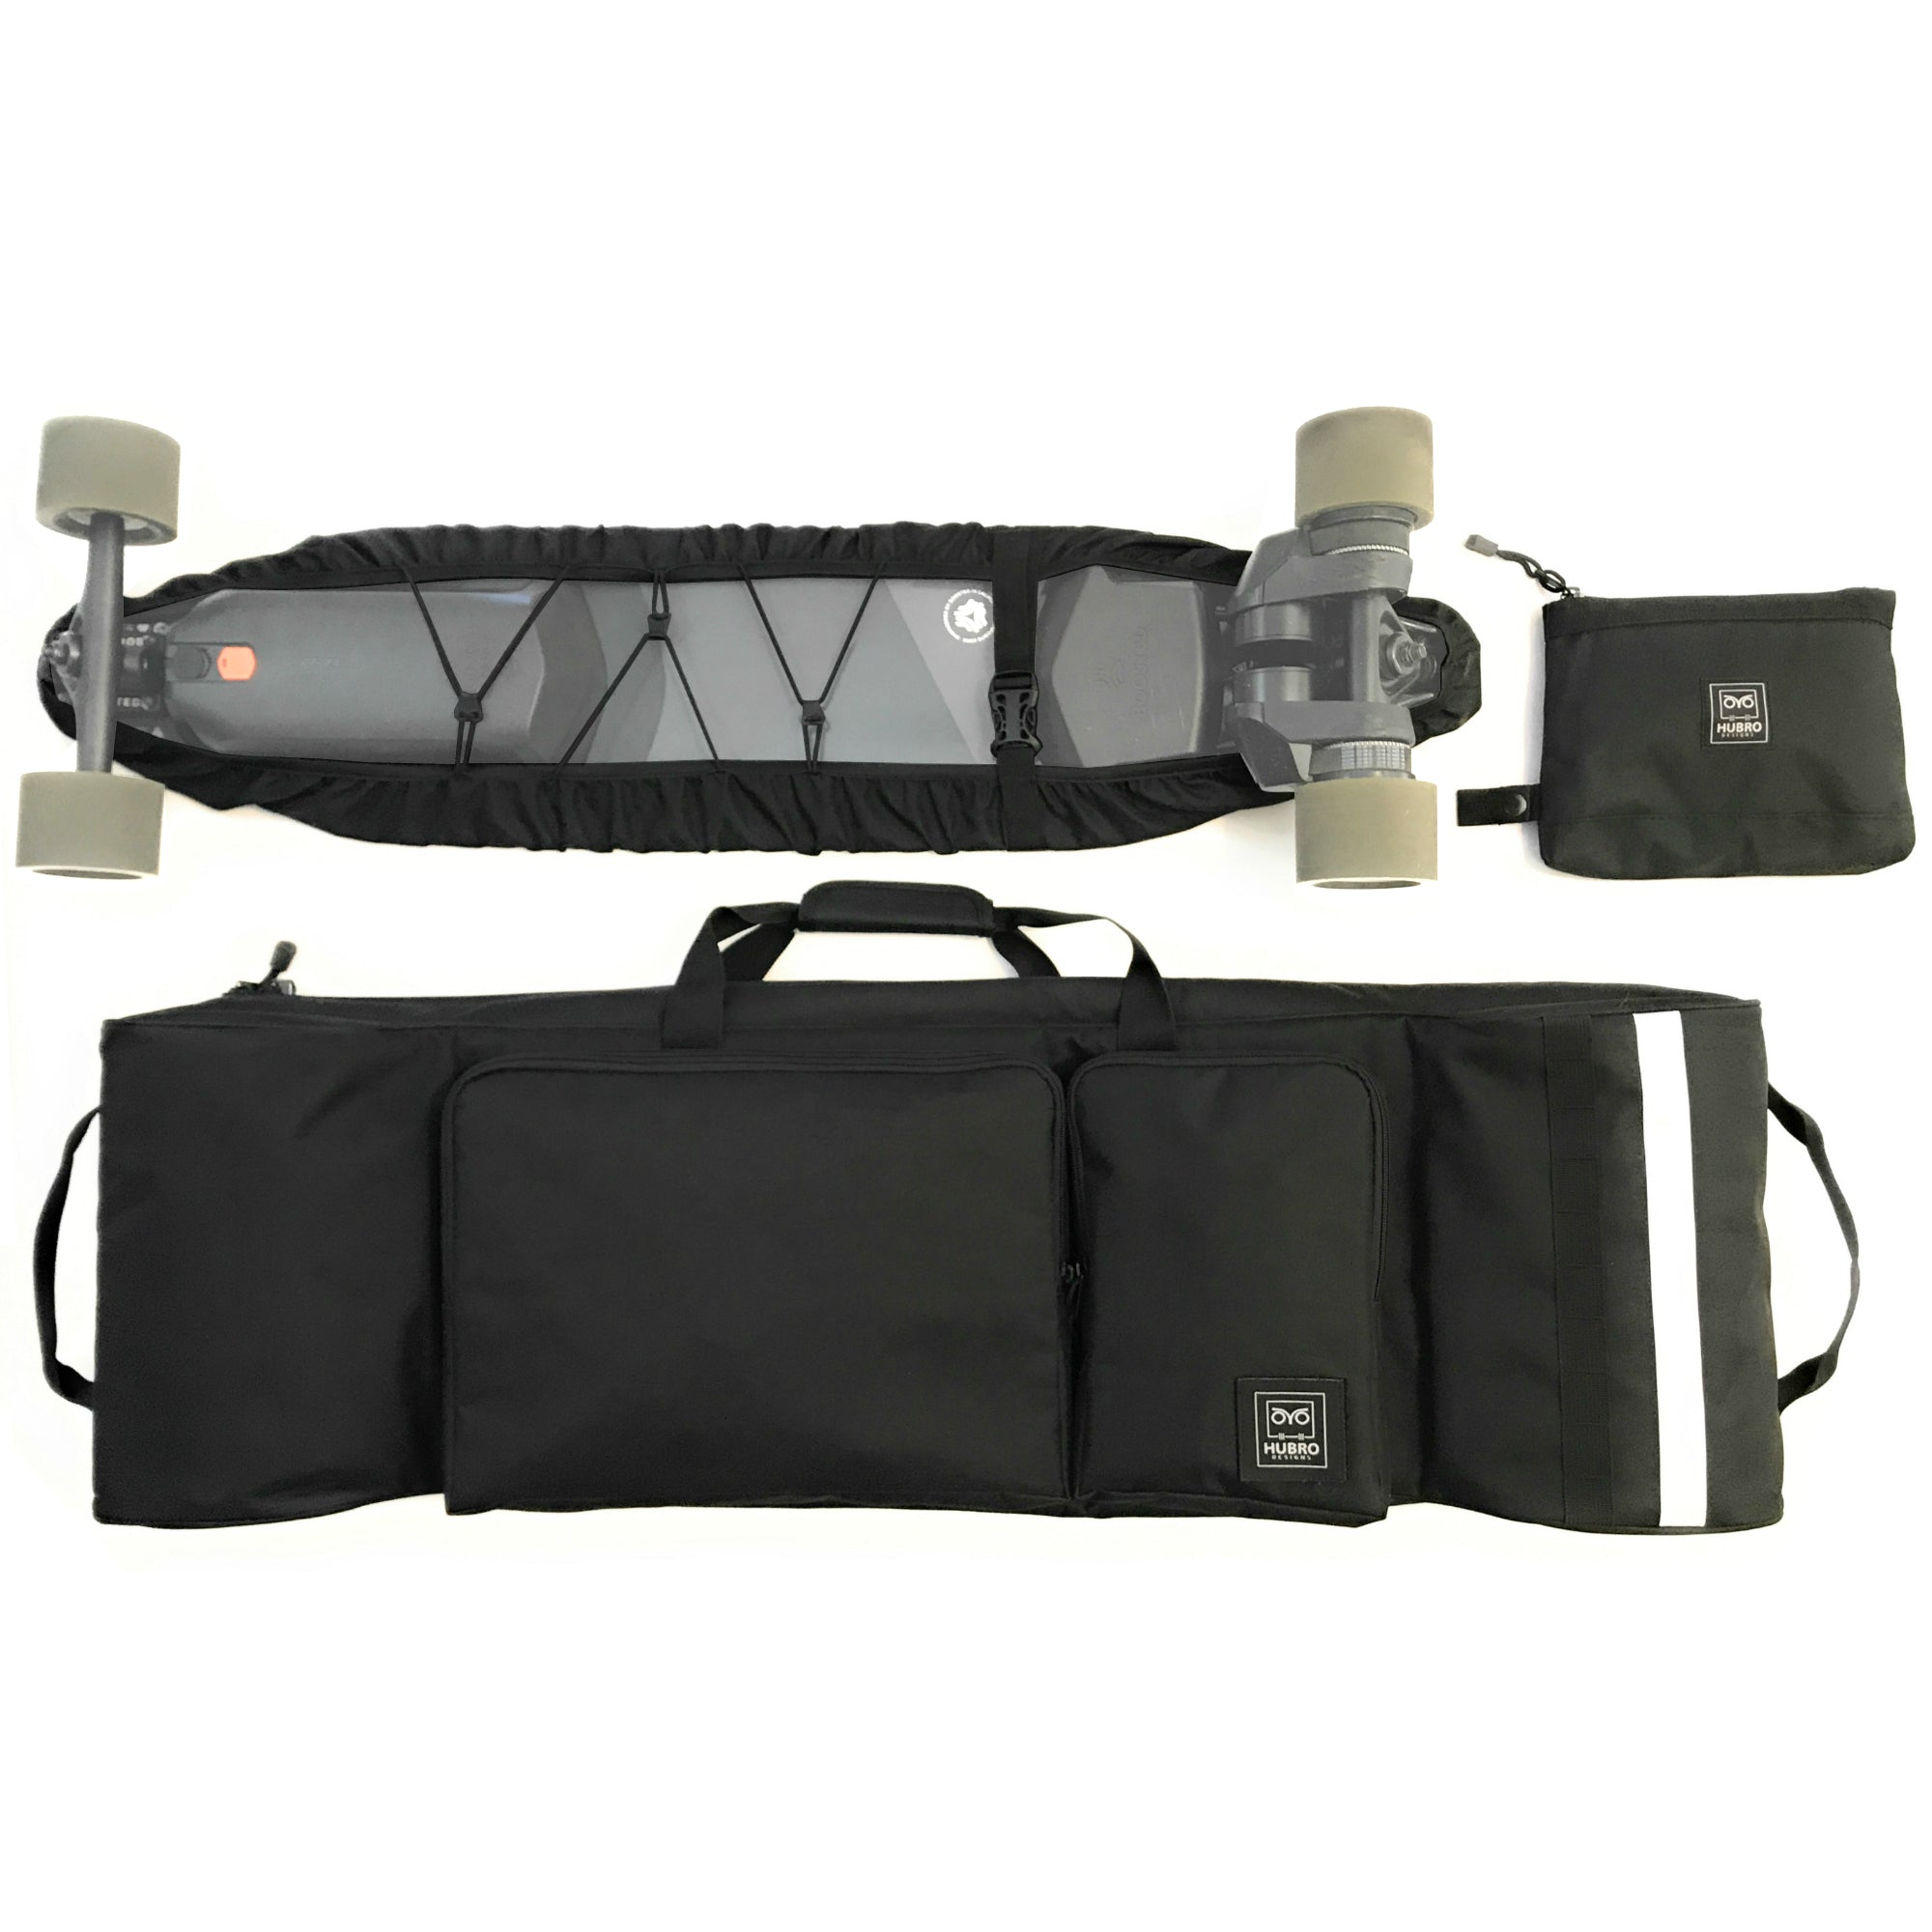 Slimfit Backpack XX Boosted Board Bag (BrdBag G5.1)